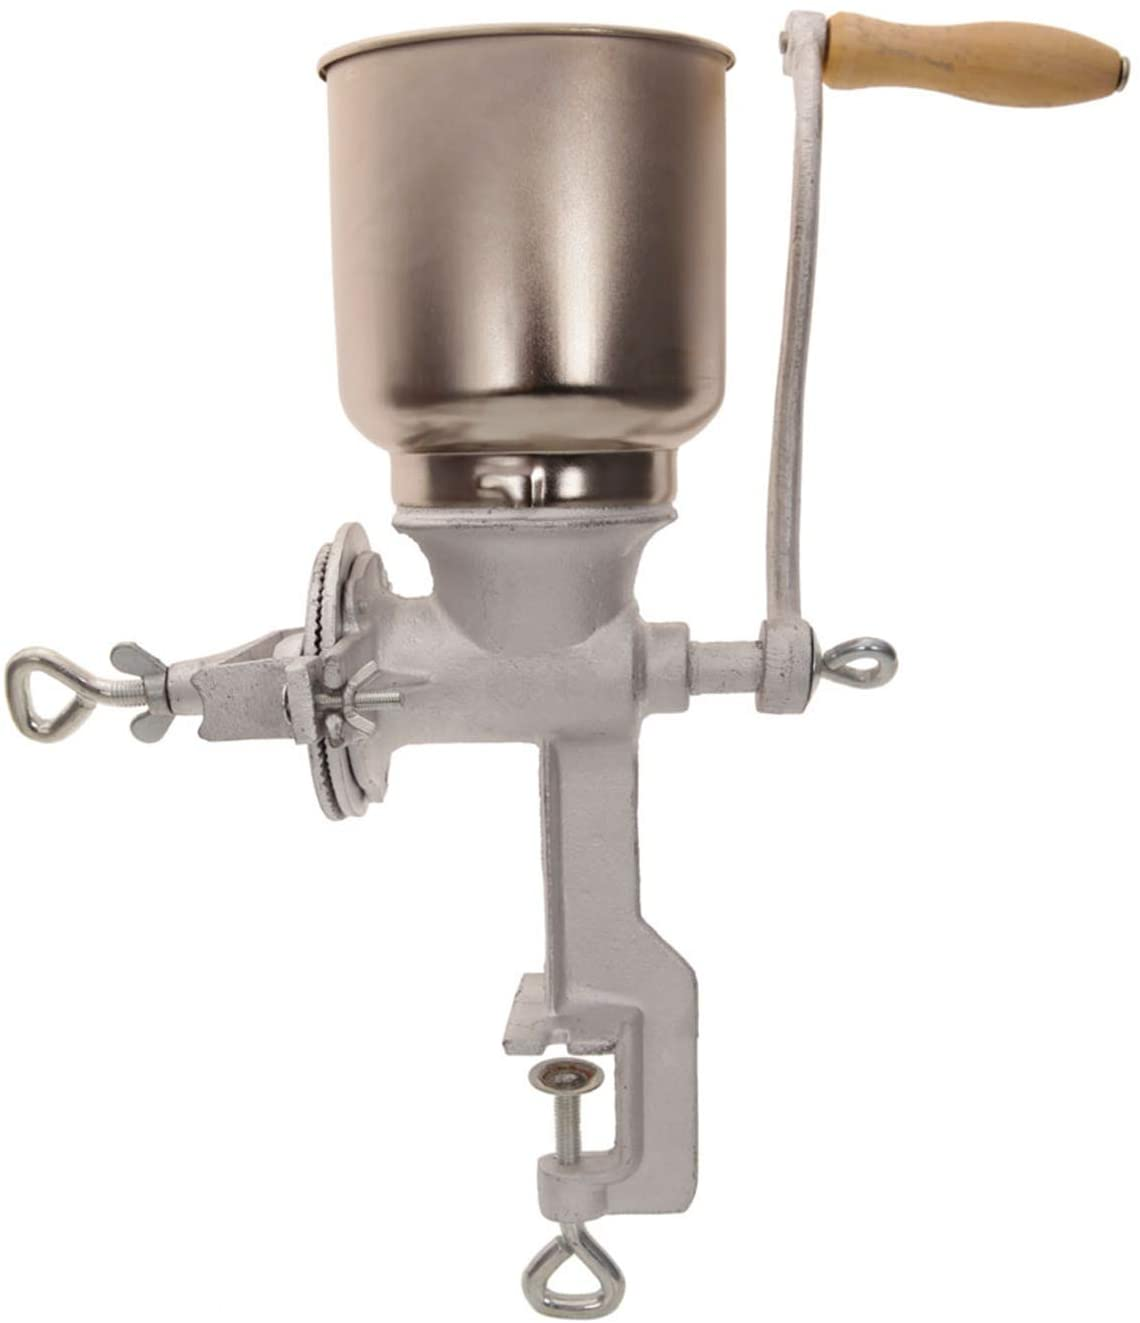 Home Use Hand Cranking Operation Grain Grinder Silver Manual Coffee Grinder, Corn Mill, Seed Grinder